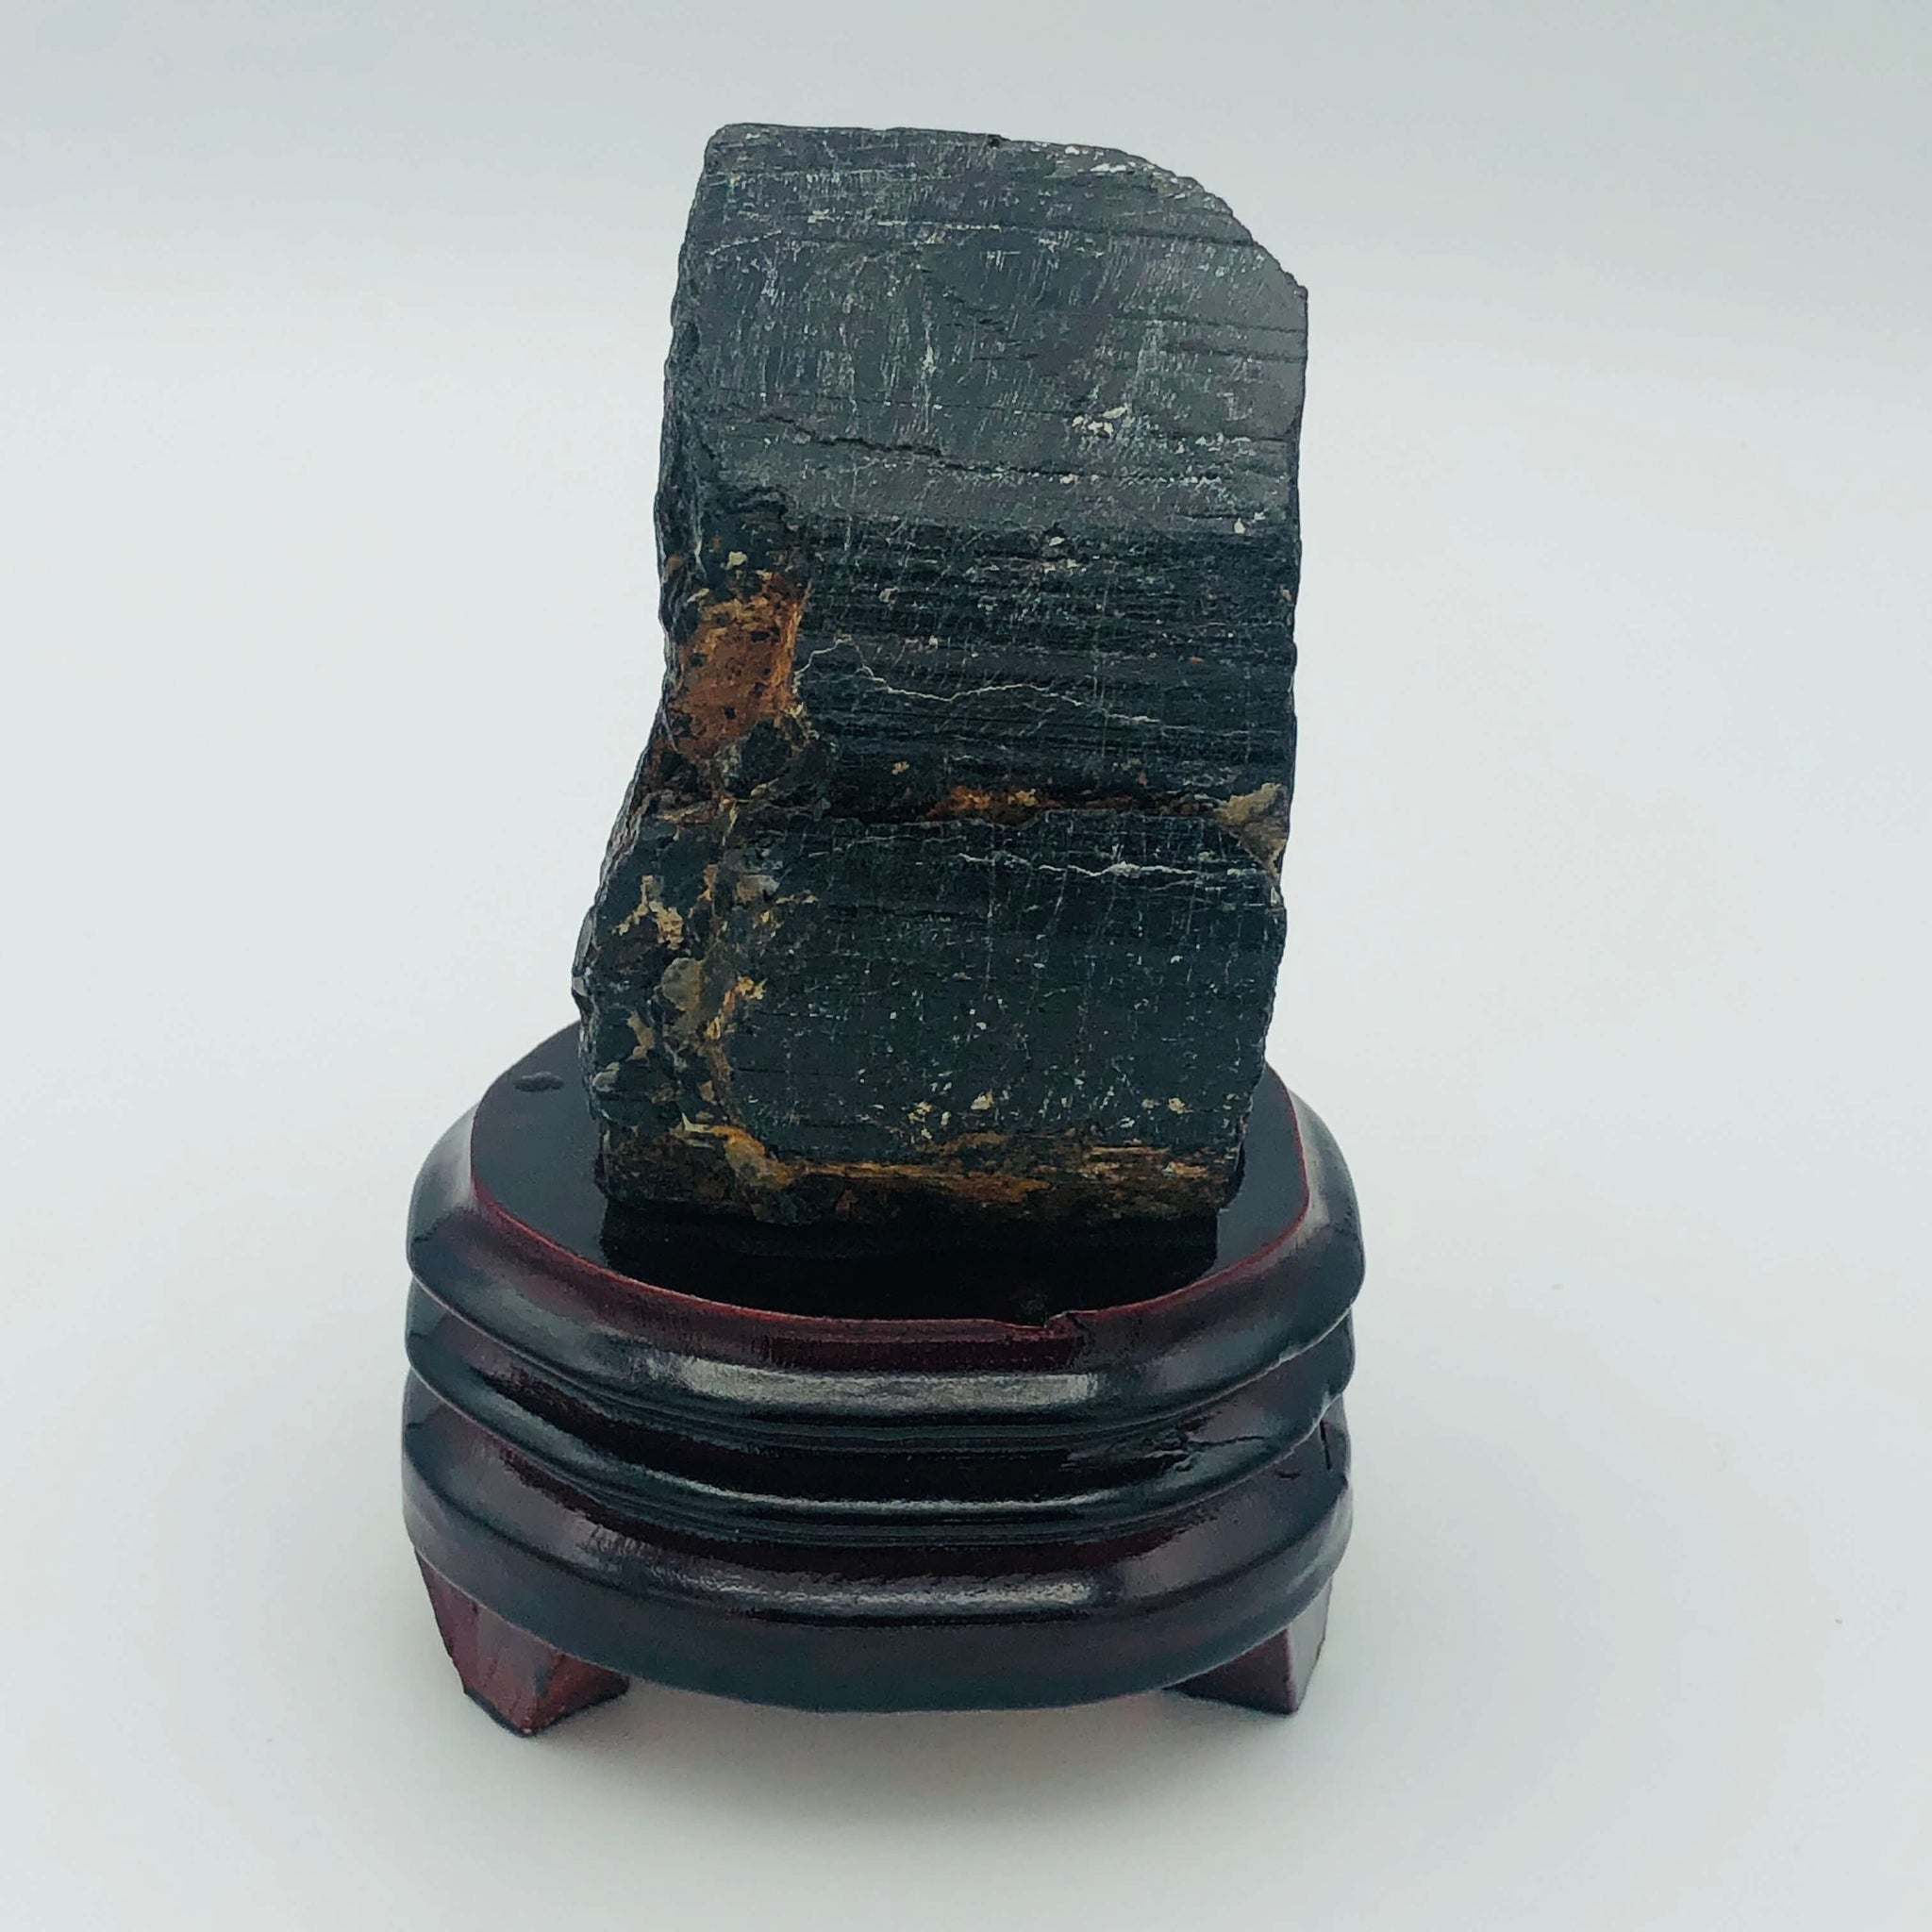 Large Black Tourmaline (Chinese Scholar's Rock)